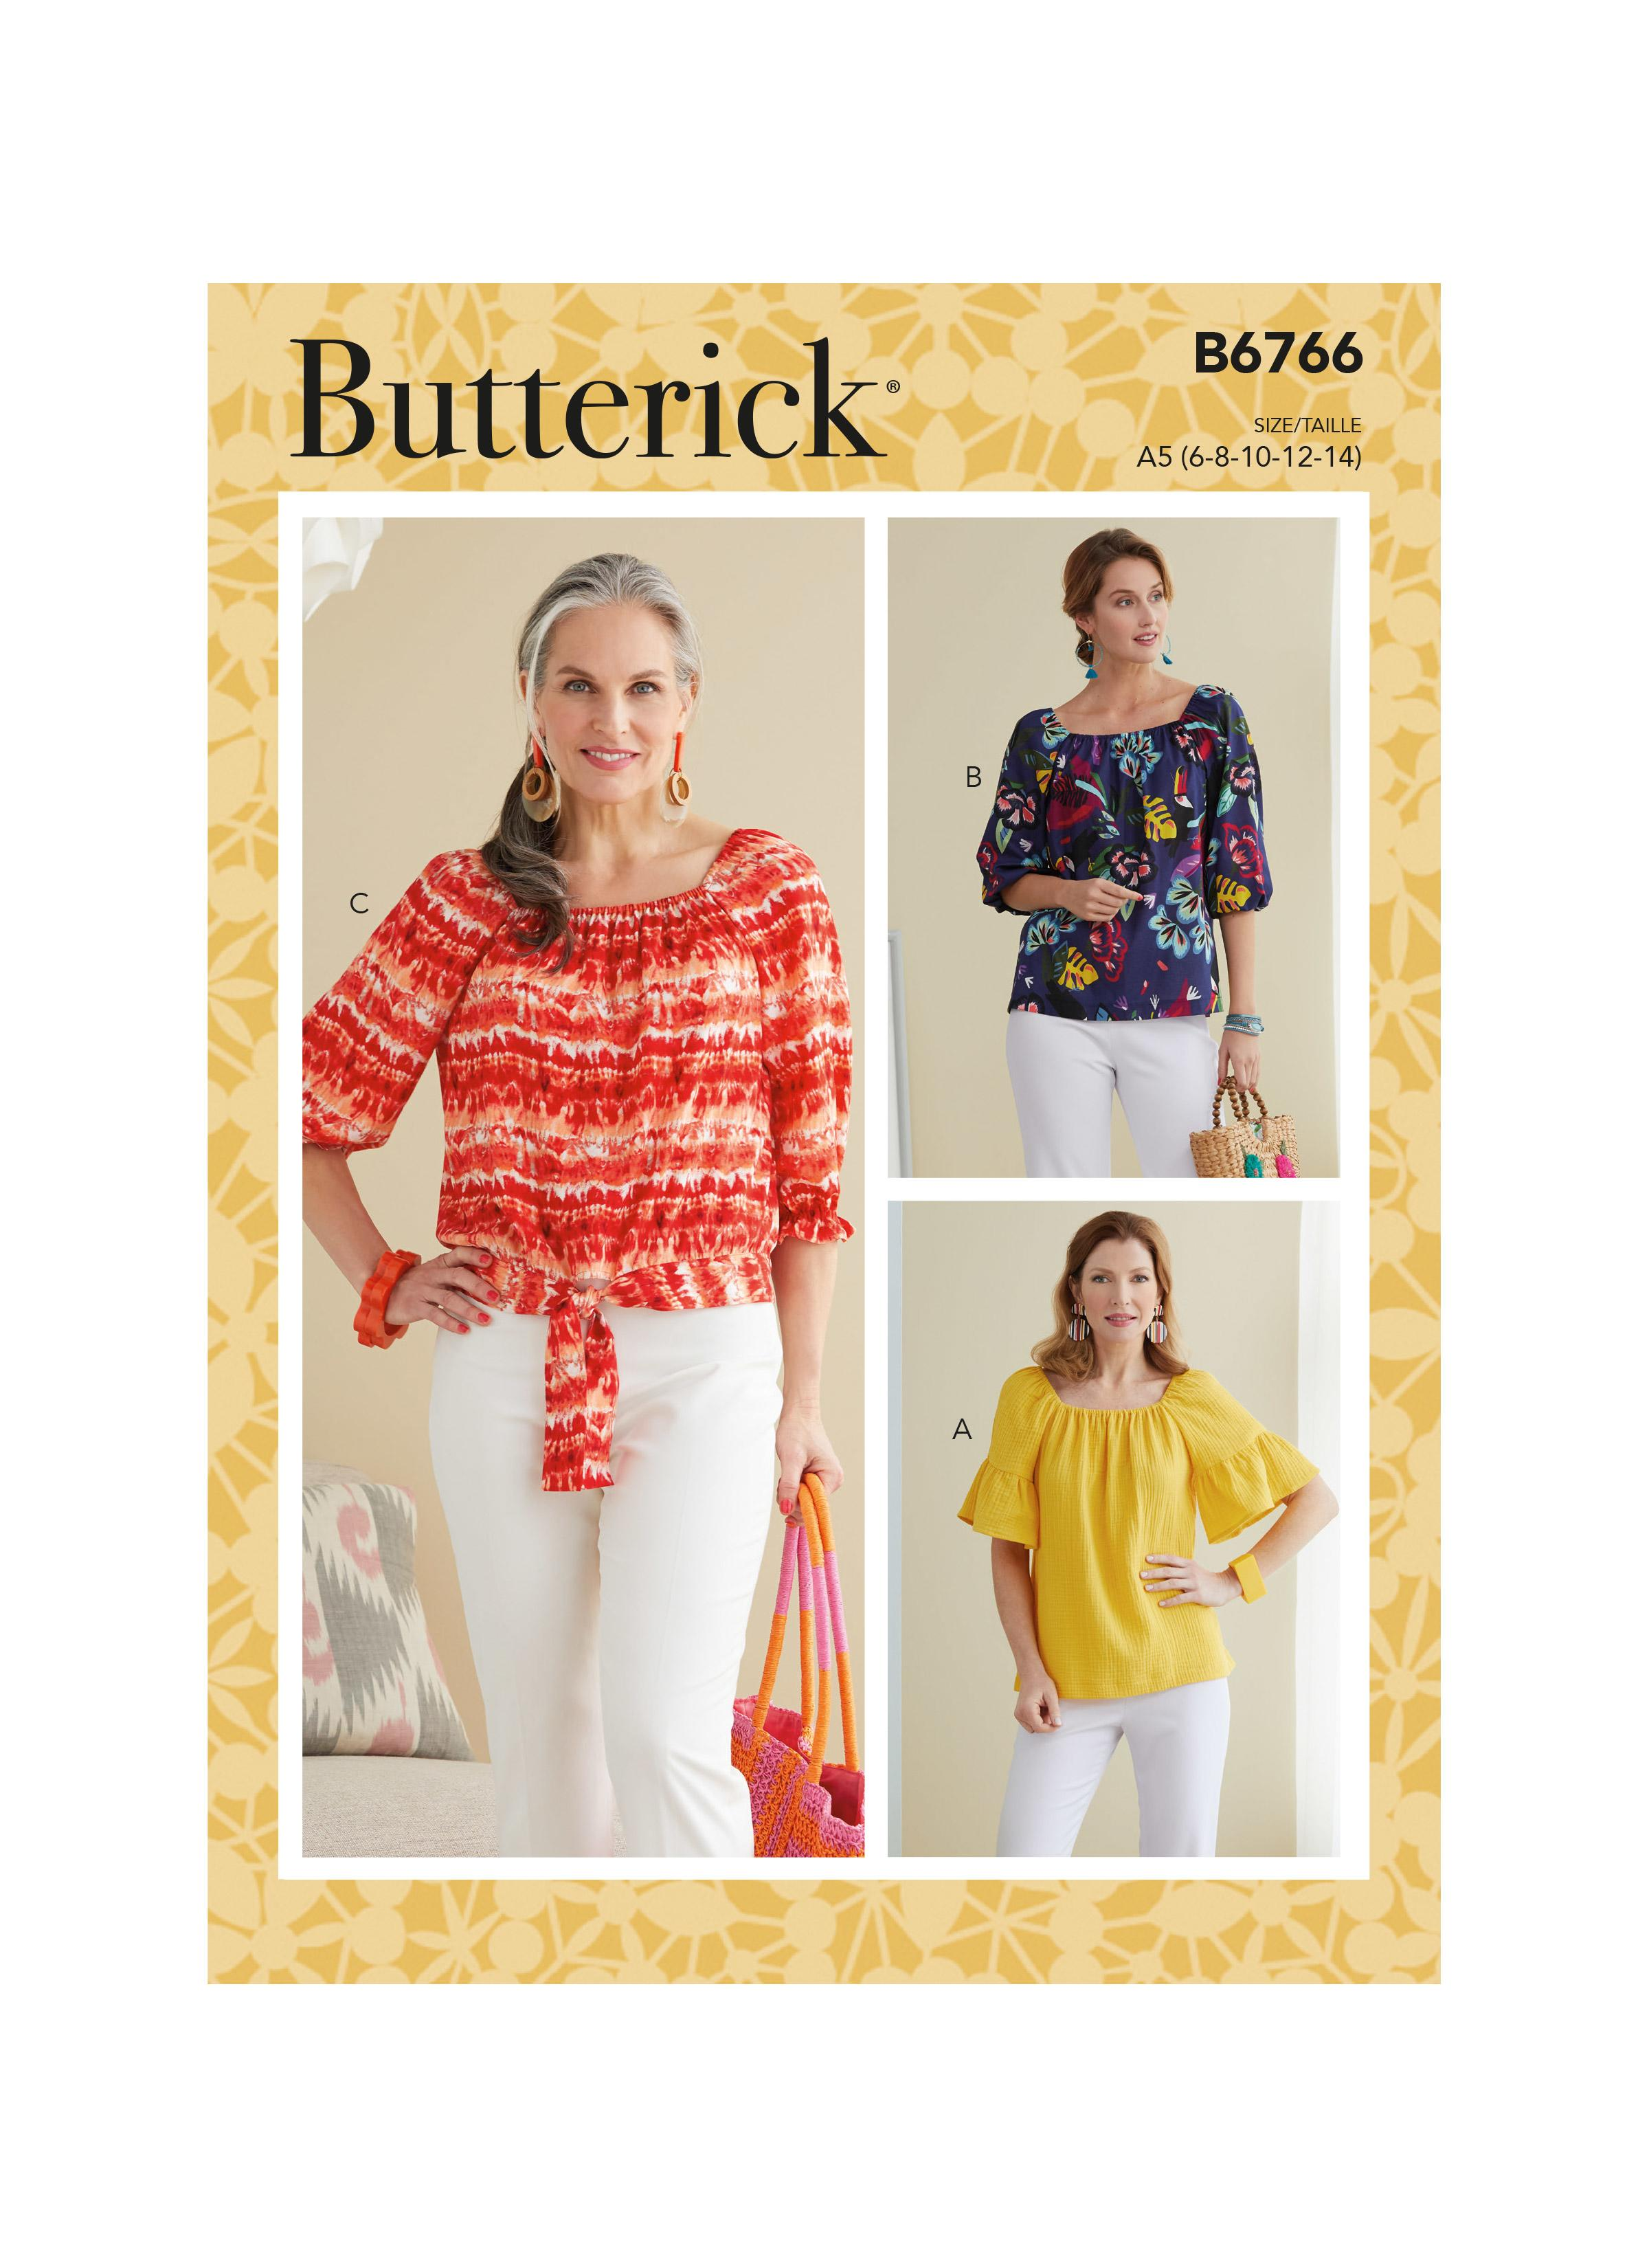 Butterick B6766 Misses' Tops